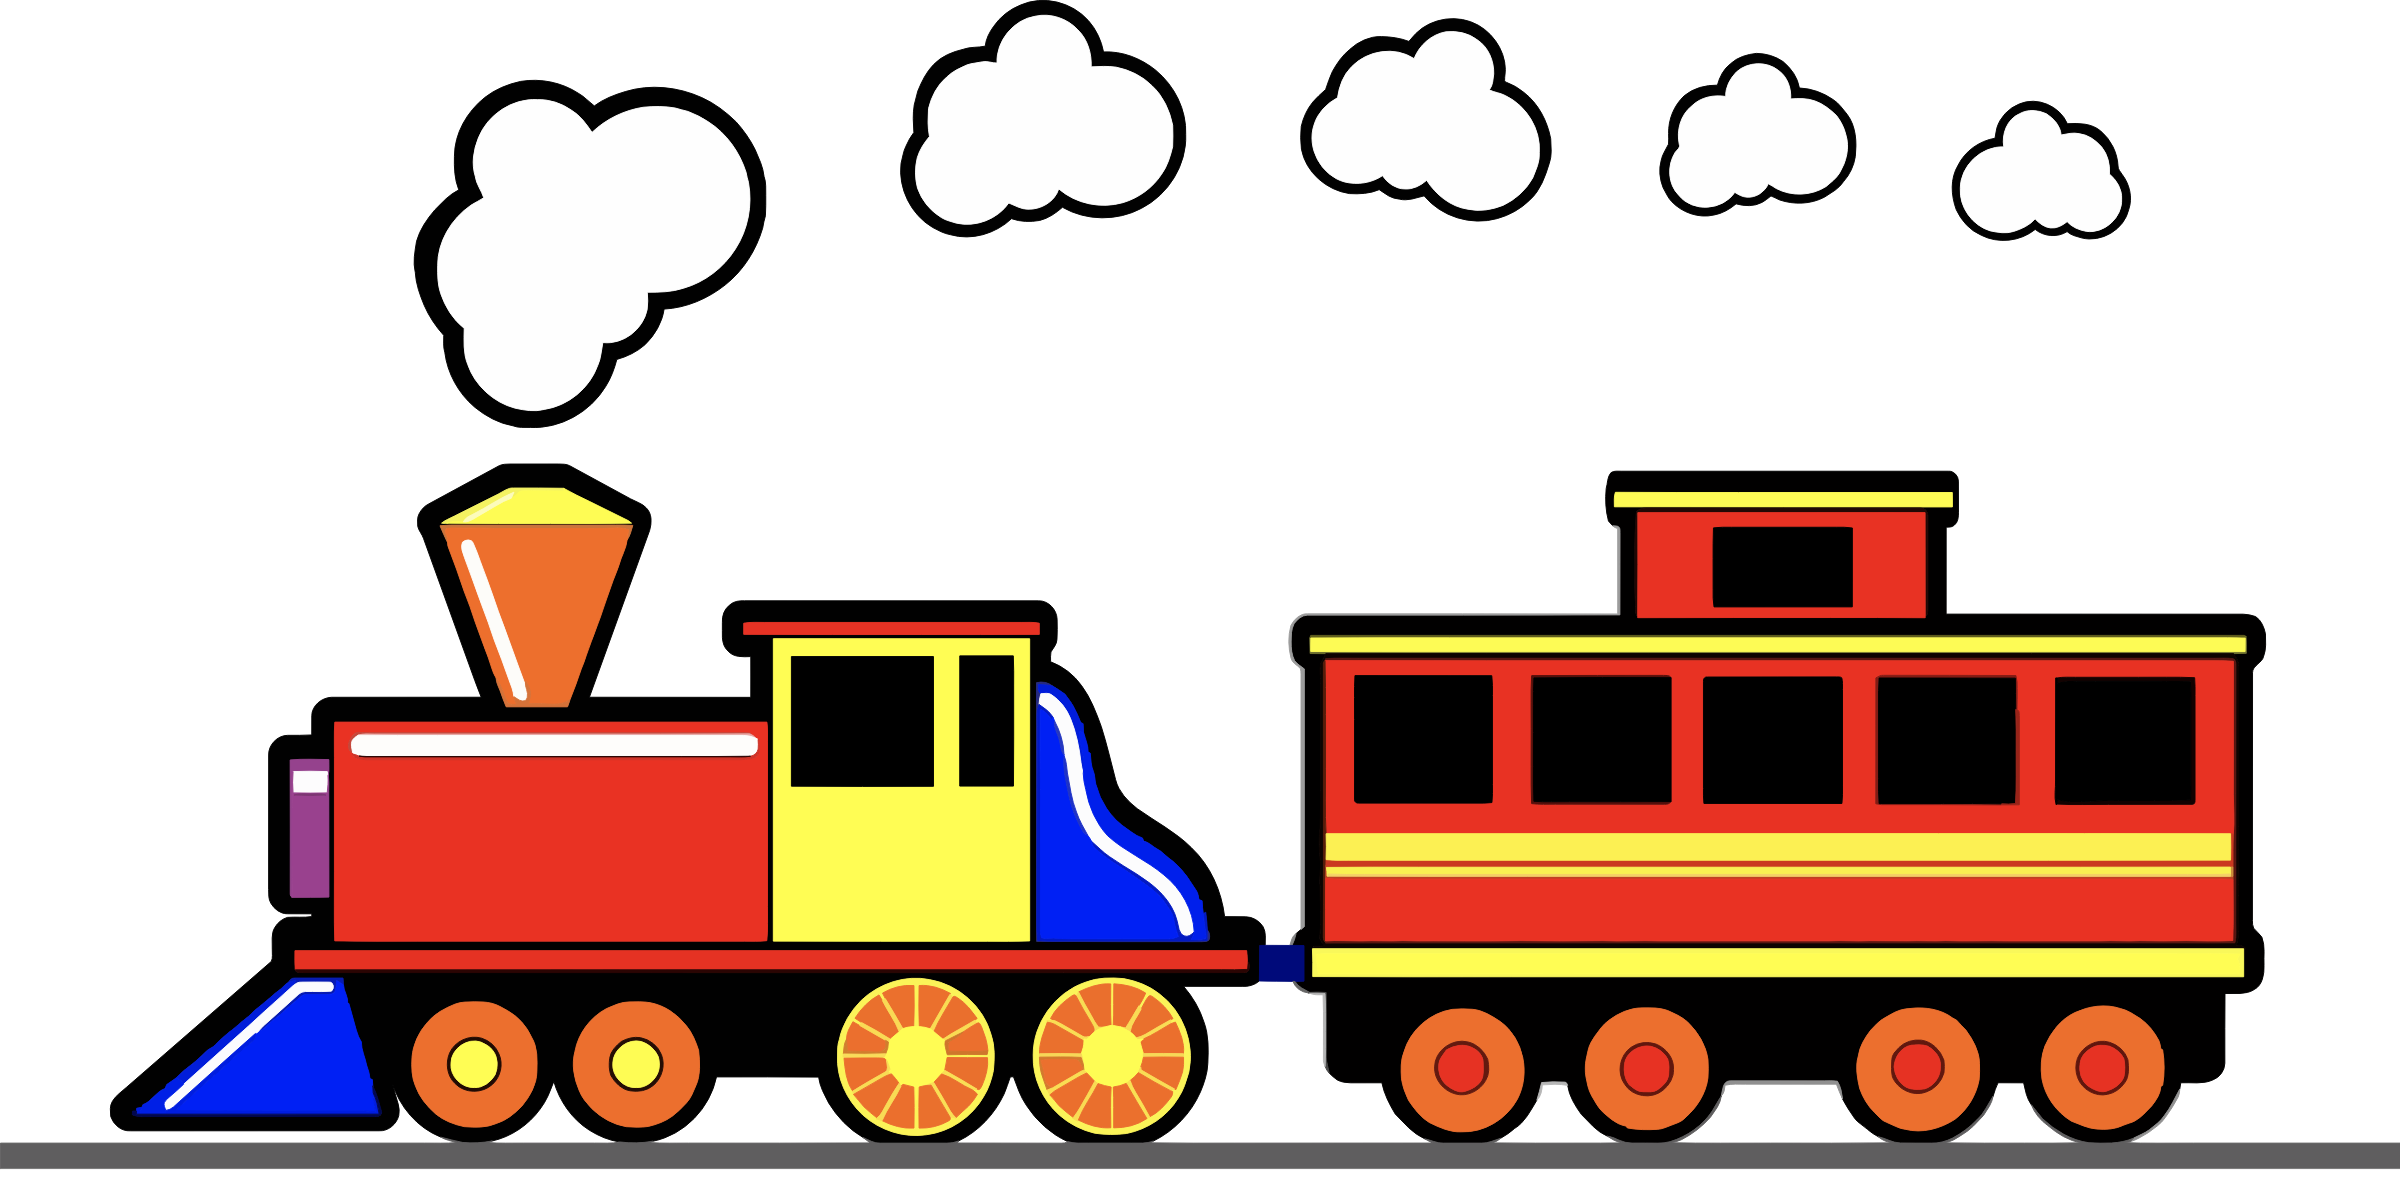 Toy Train by JayNick